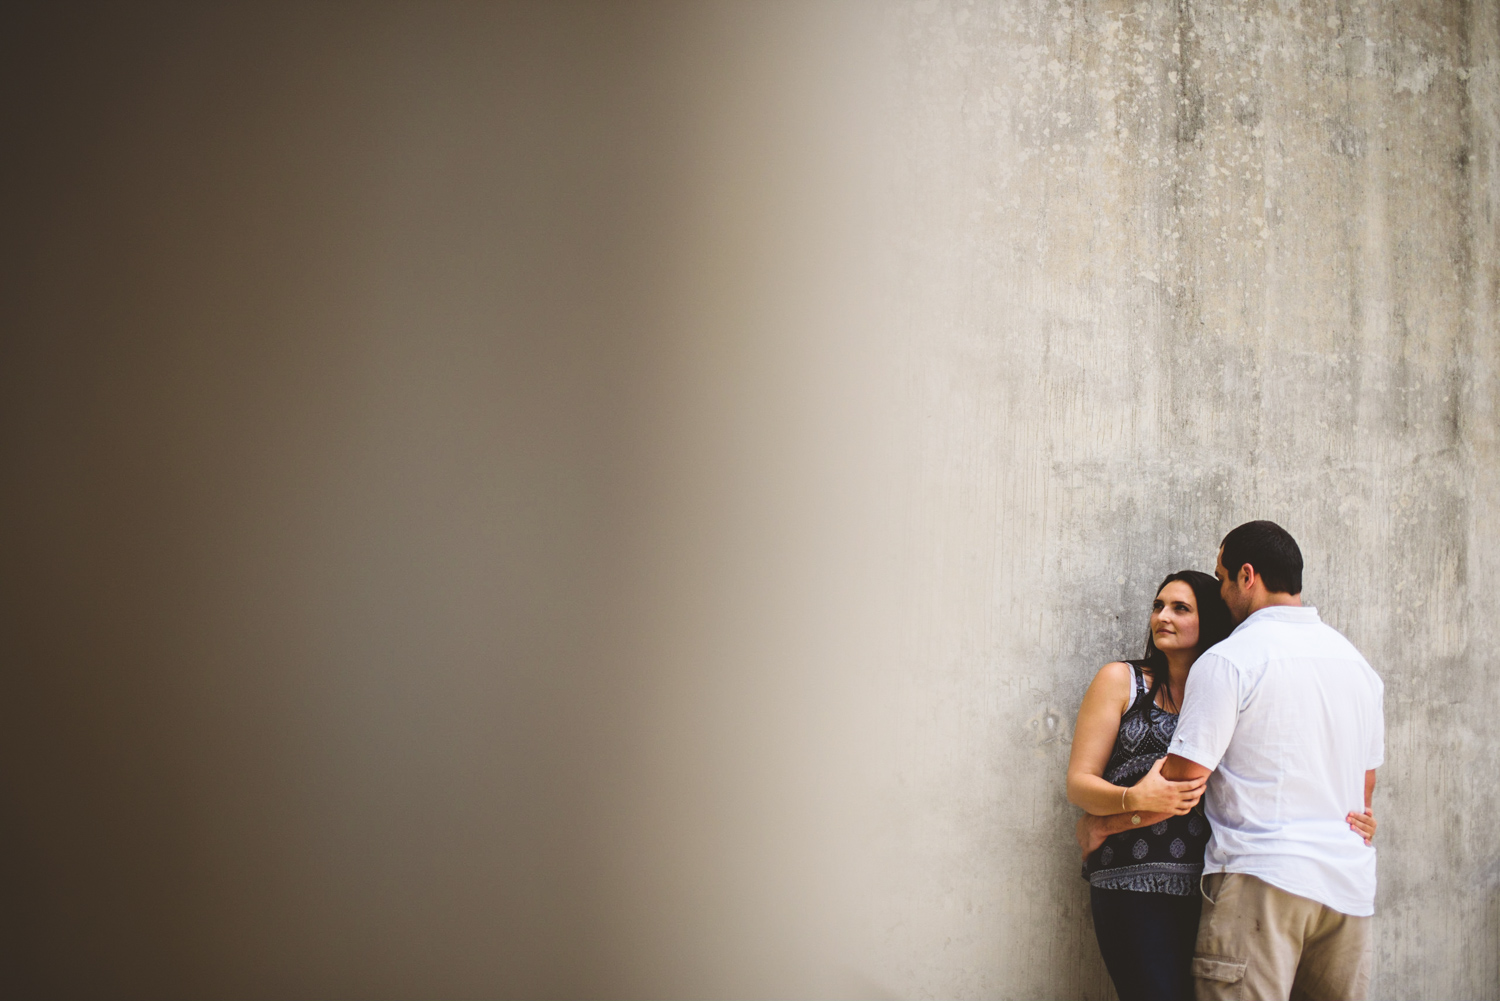 005 couple at the canal walk richmond wedding photographer nathan mitchell photography.jpg